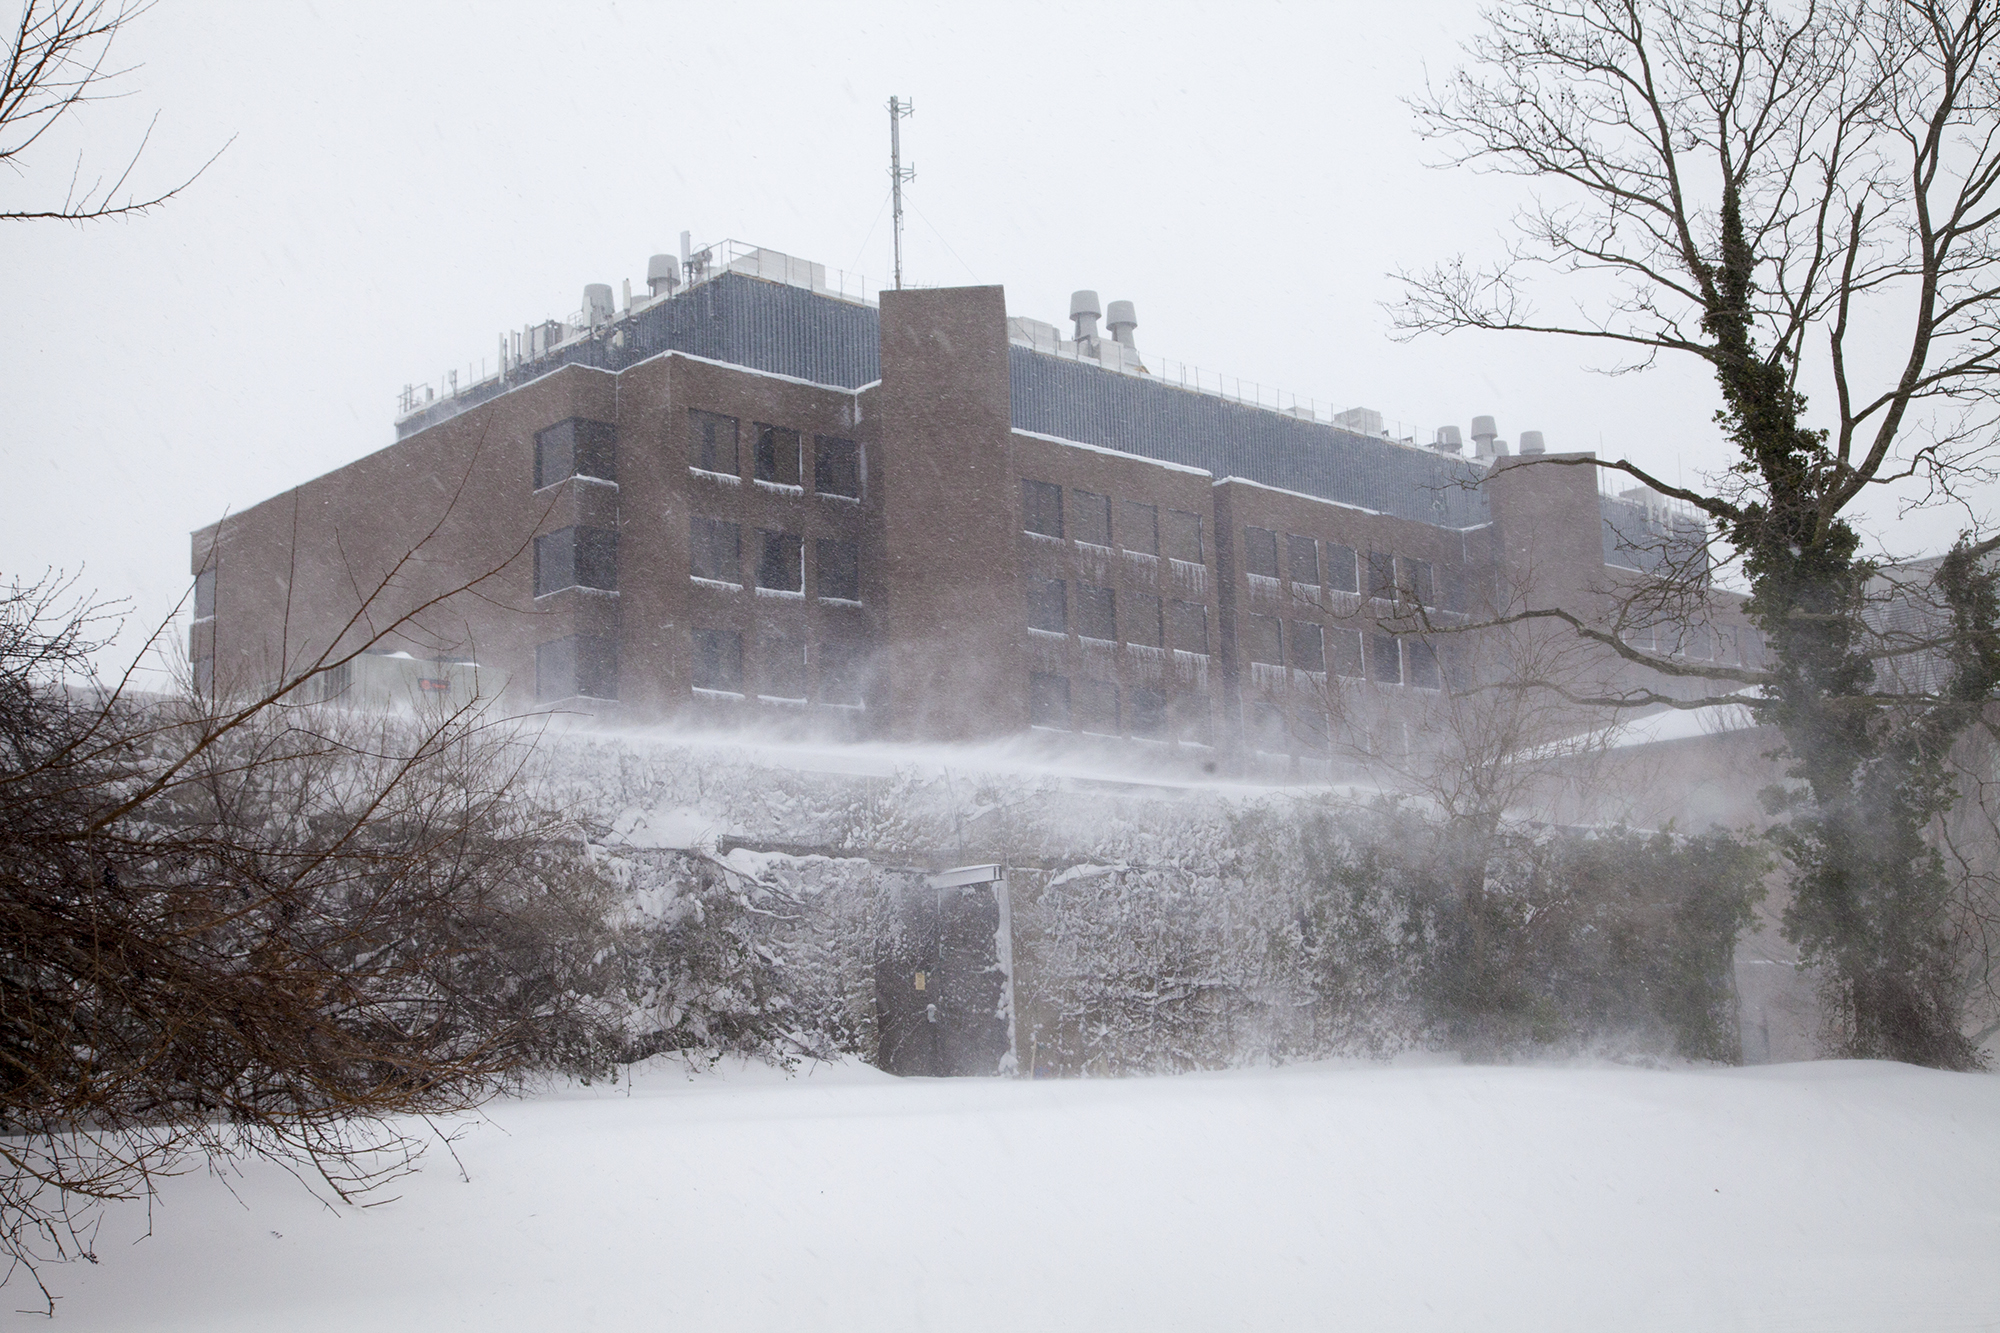 The Chemistry building  as seen from Harriman Hall at Stony Brook University during Winter Storm Jonas on Saturday, Jan. 23. CHRISTOPHER CAMERON/THE STATESMAN